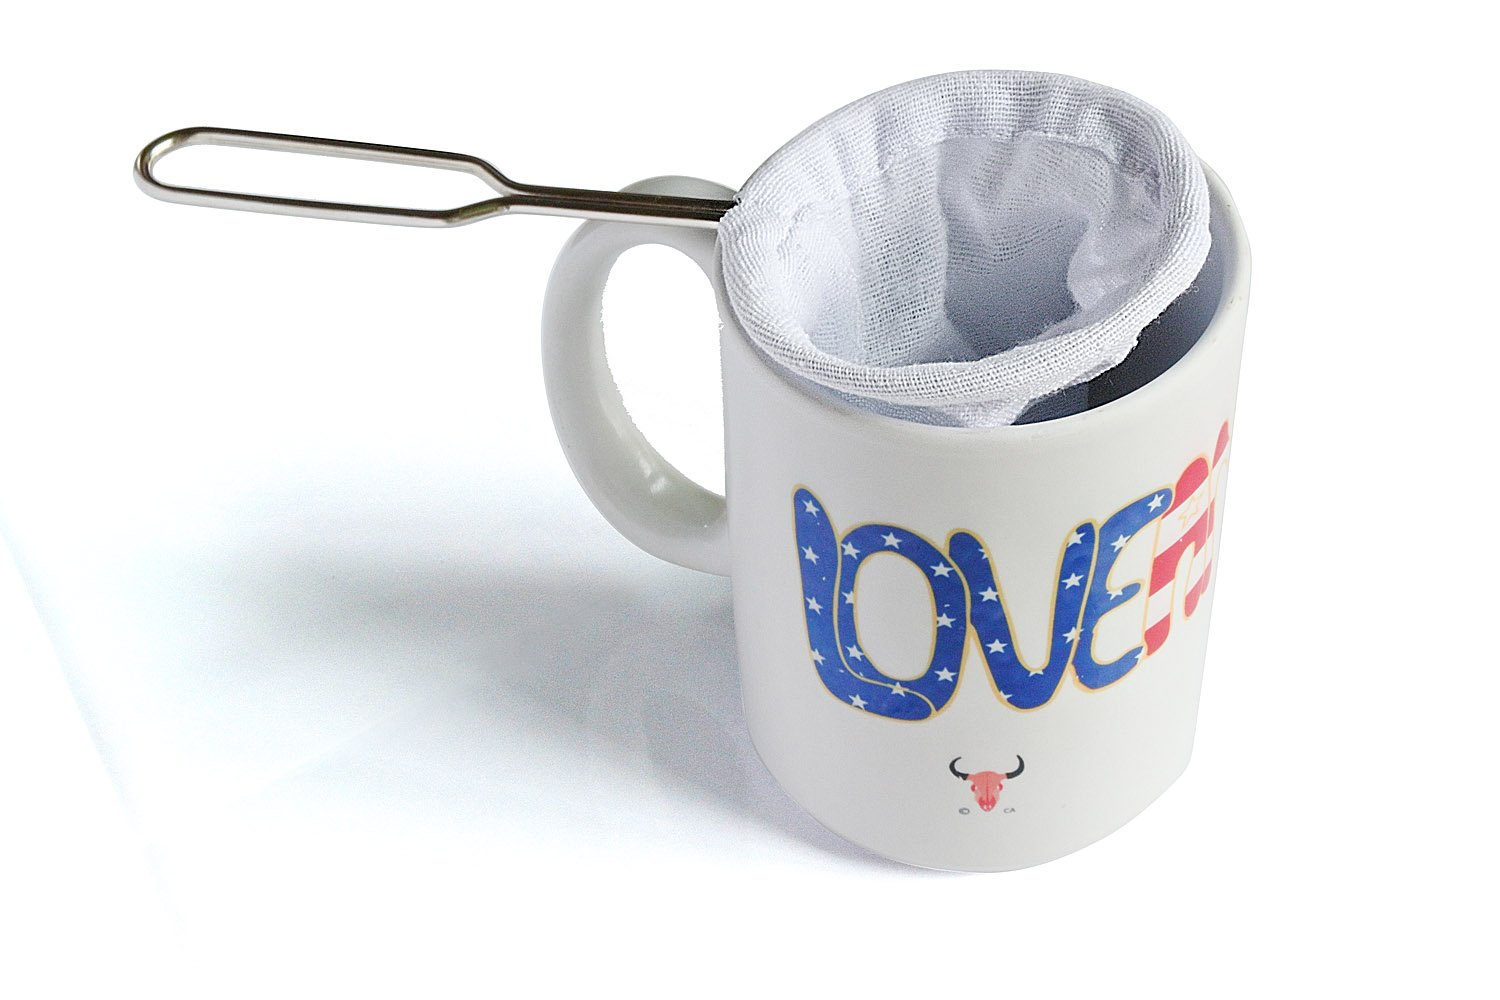 One Cup Reusable Cotton Filter Coffee and Thai Iced Tea Strainer